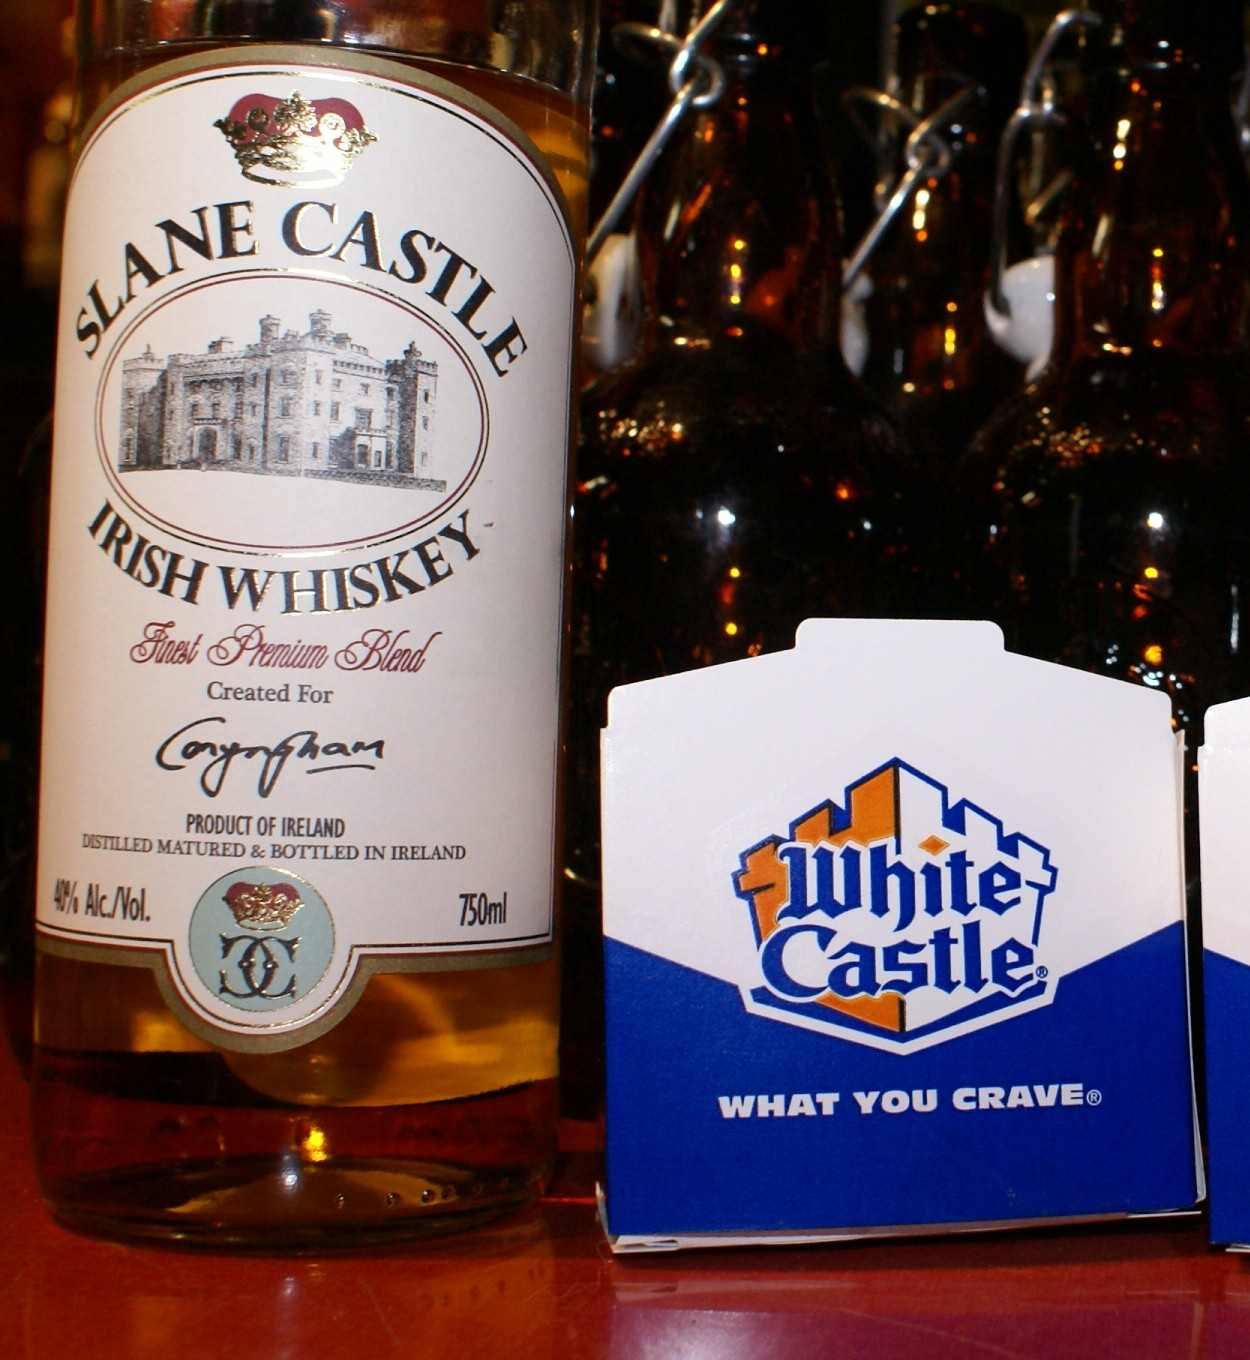 white castle whisky Buy white castle calibre 69 whisky whiskey in quezon city philippines — from convoy marketing, corporation in catalog allbiz.